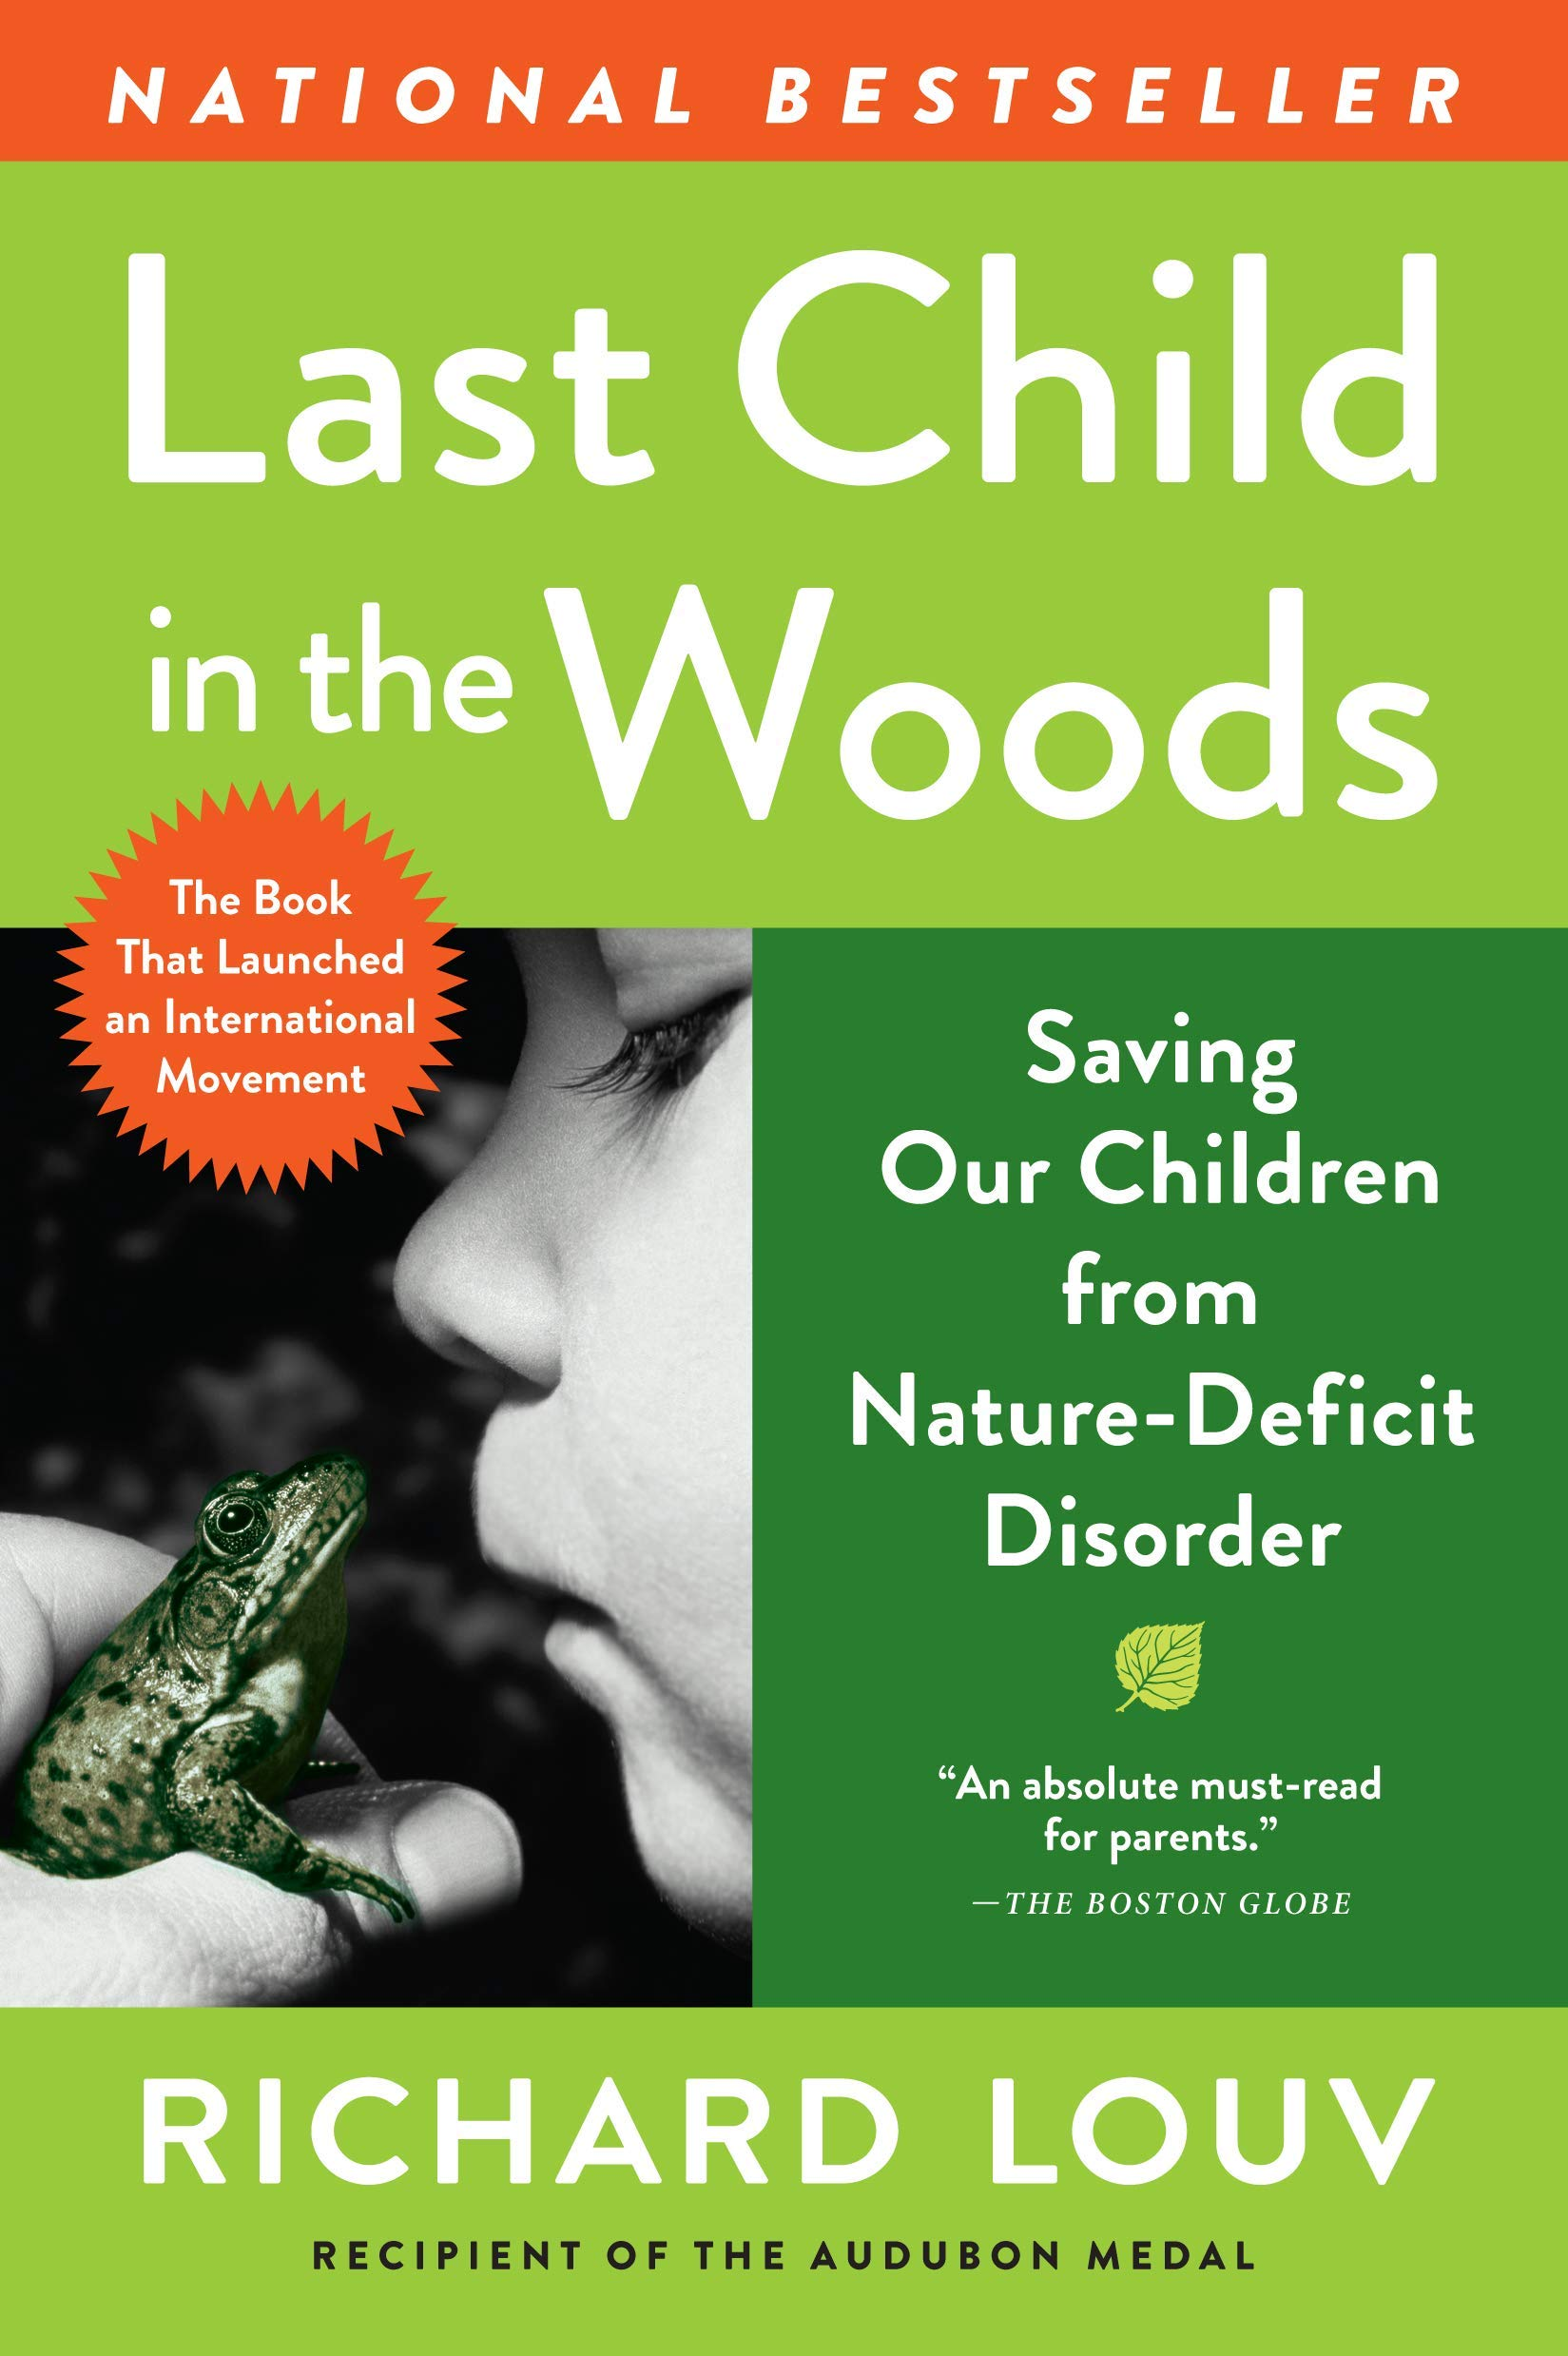 The Play Deficit >> Last Child In The Woods Saving Our Children From Nature Deficit